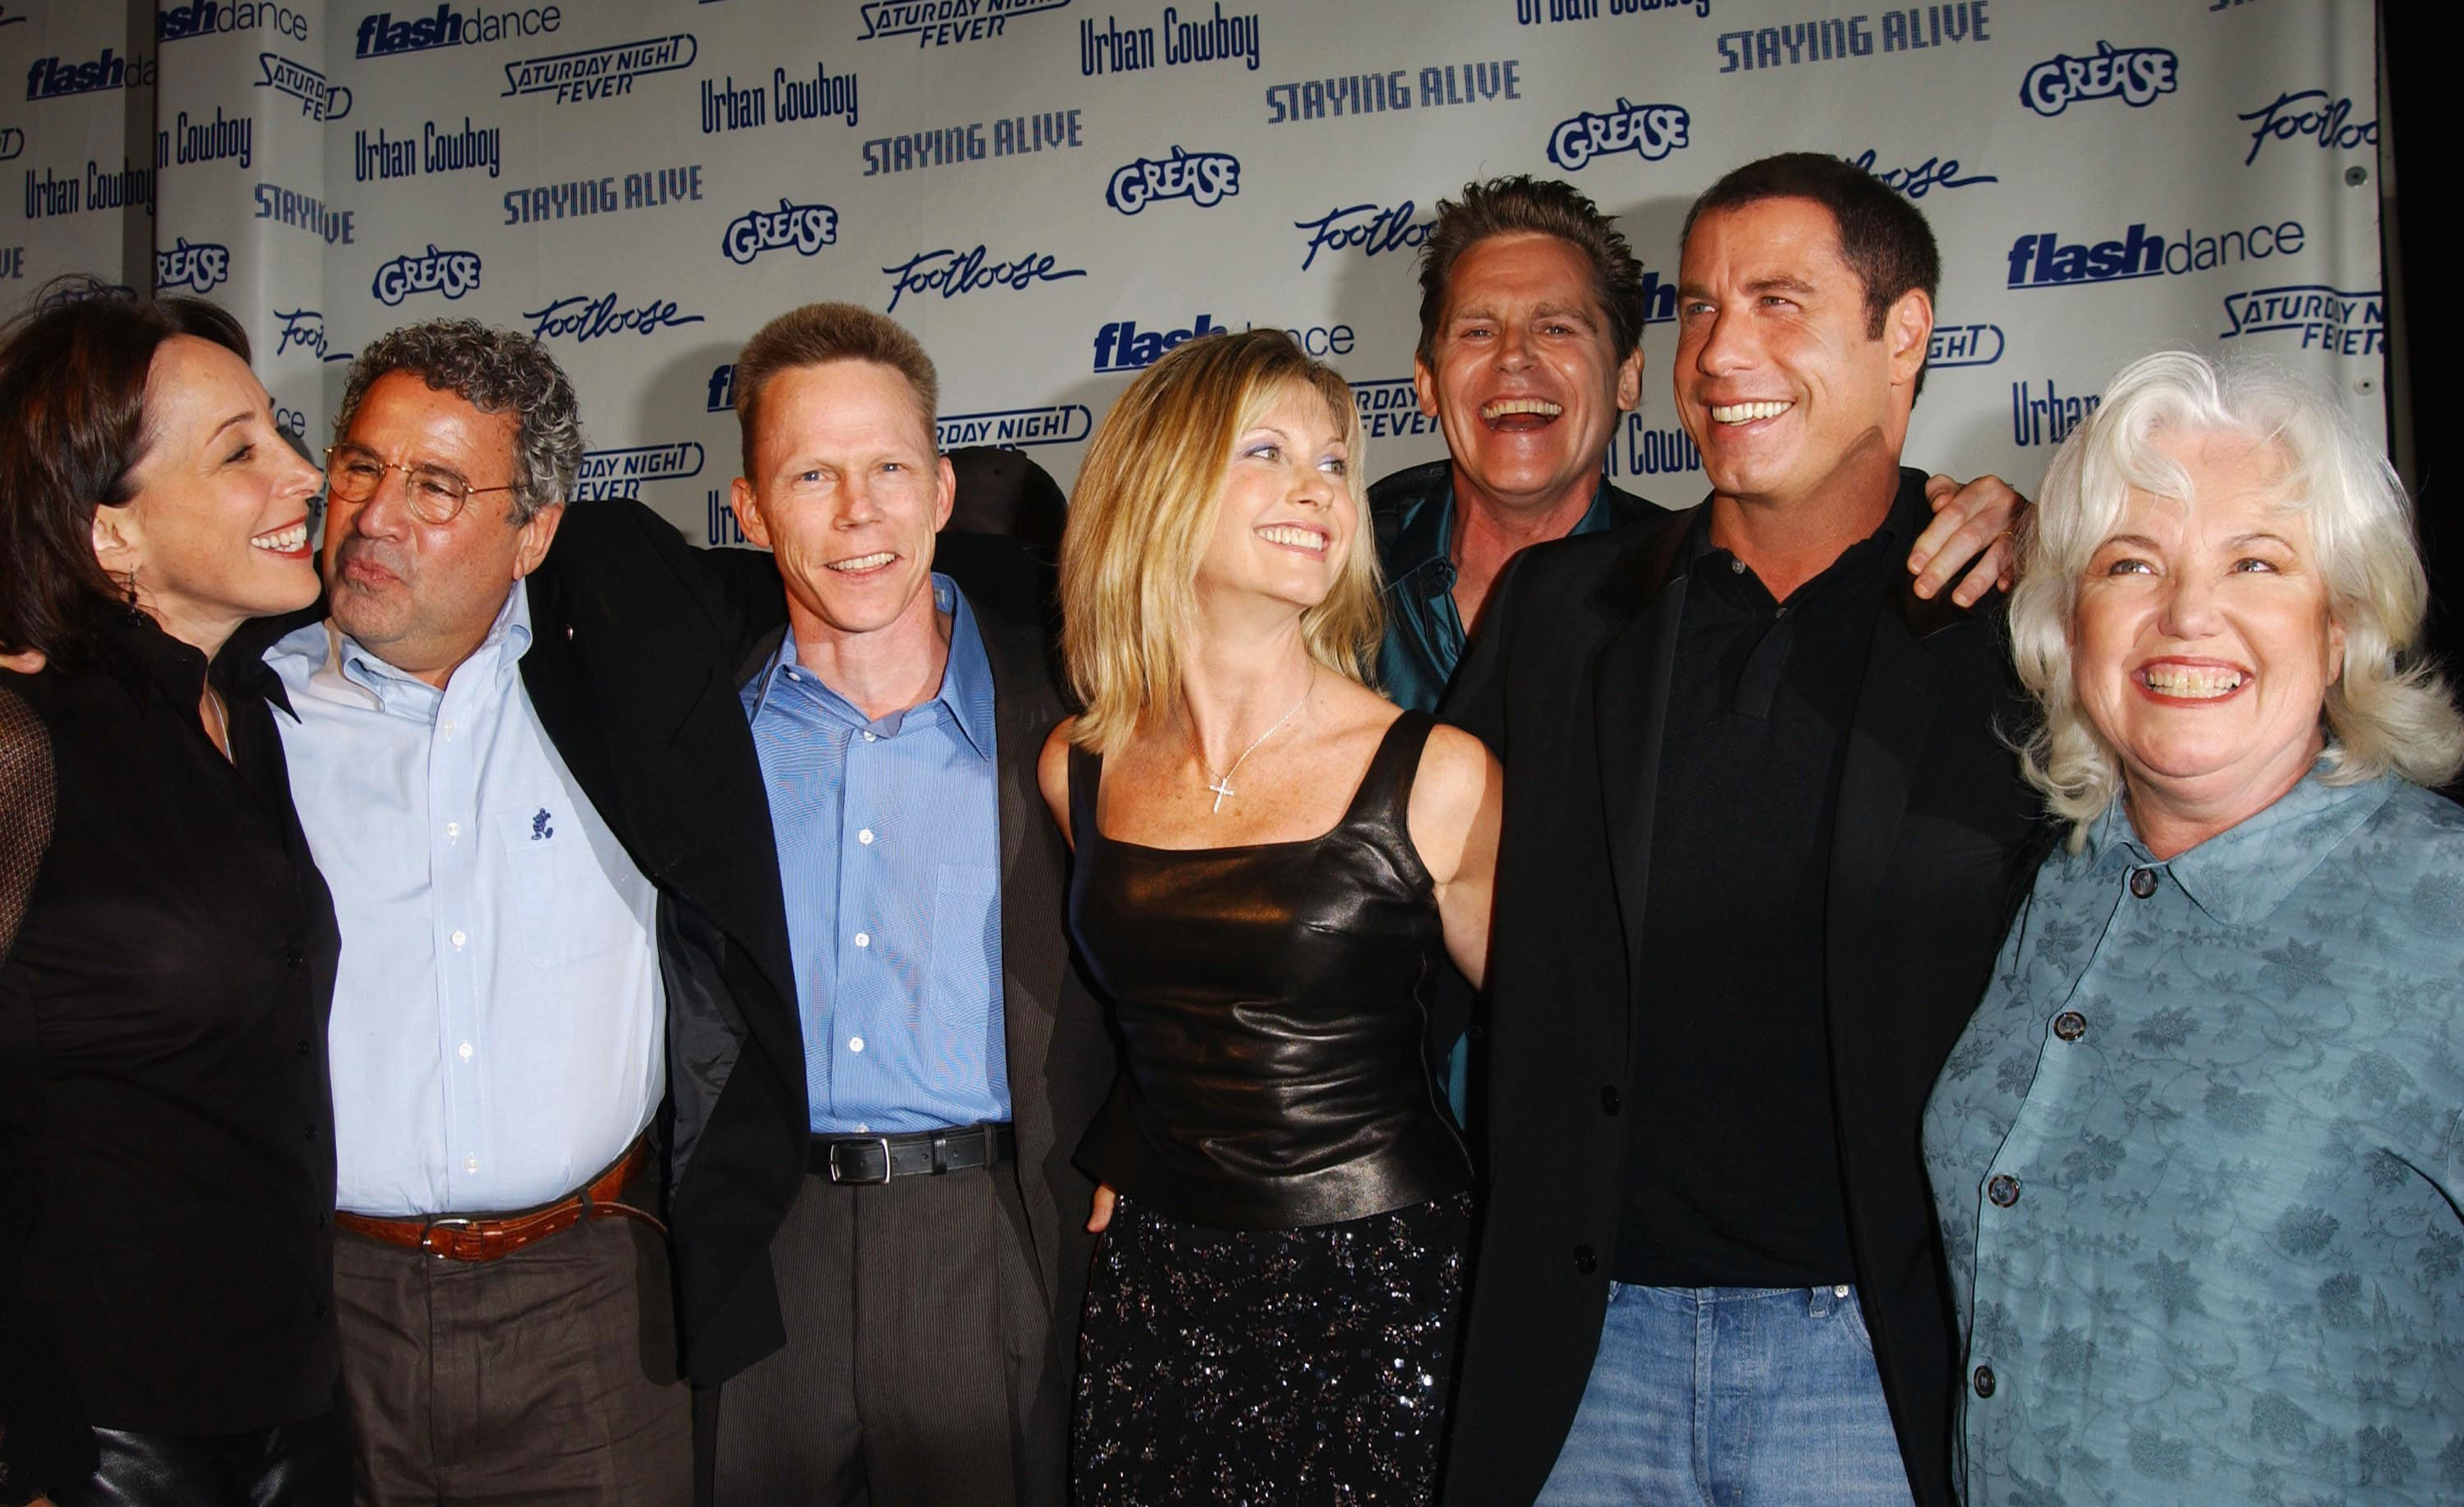 Image Credits: Getty Images   The full cast seems alive and well during their reunion